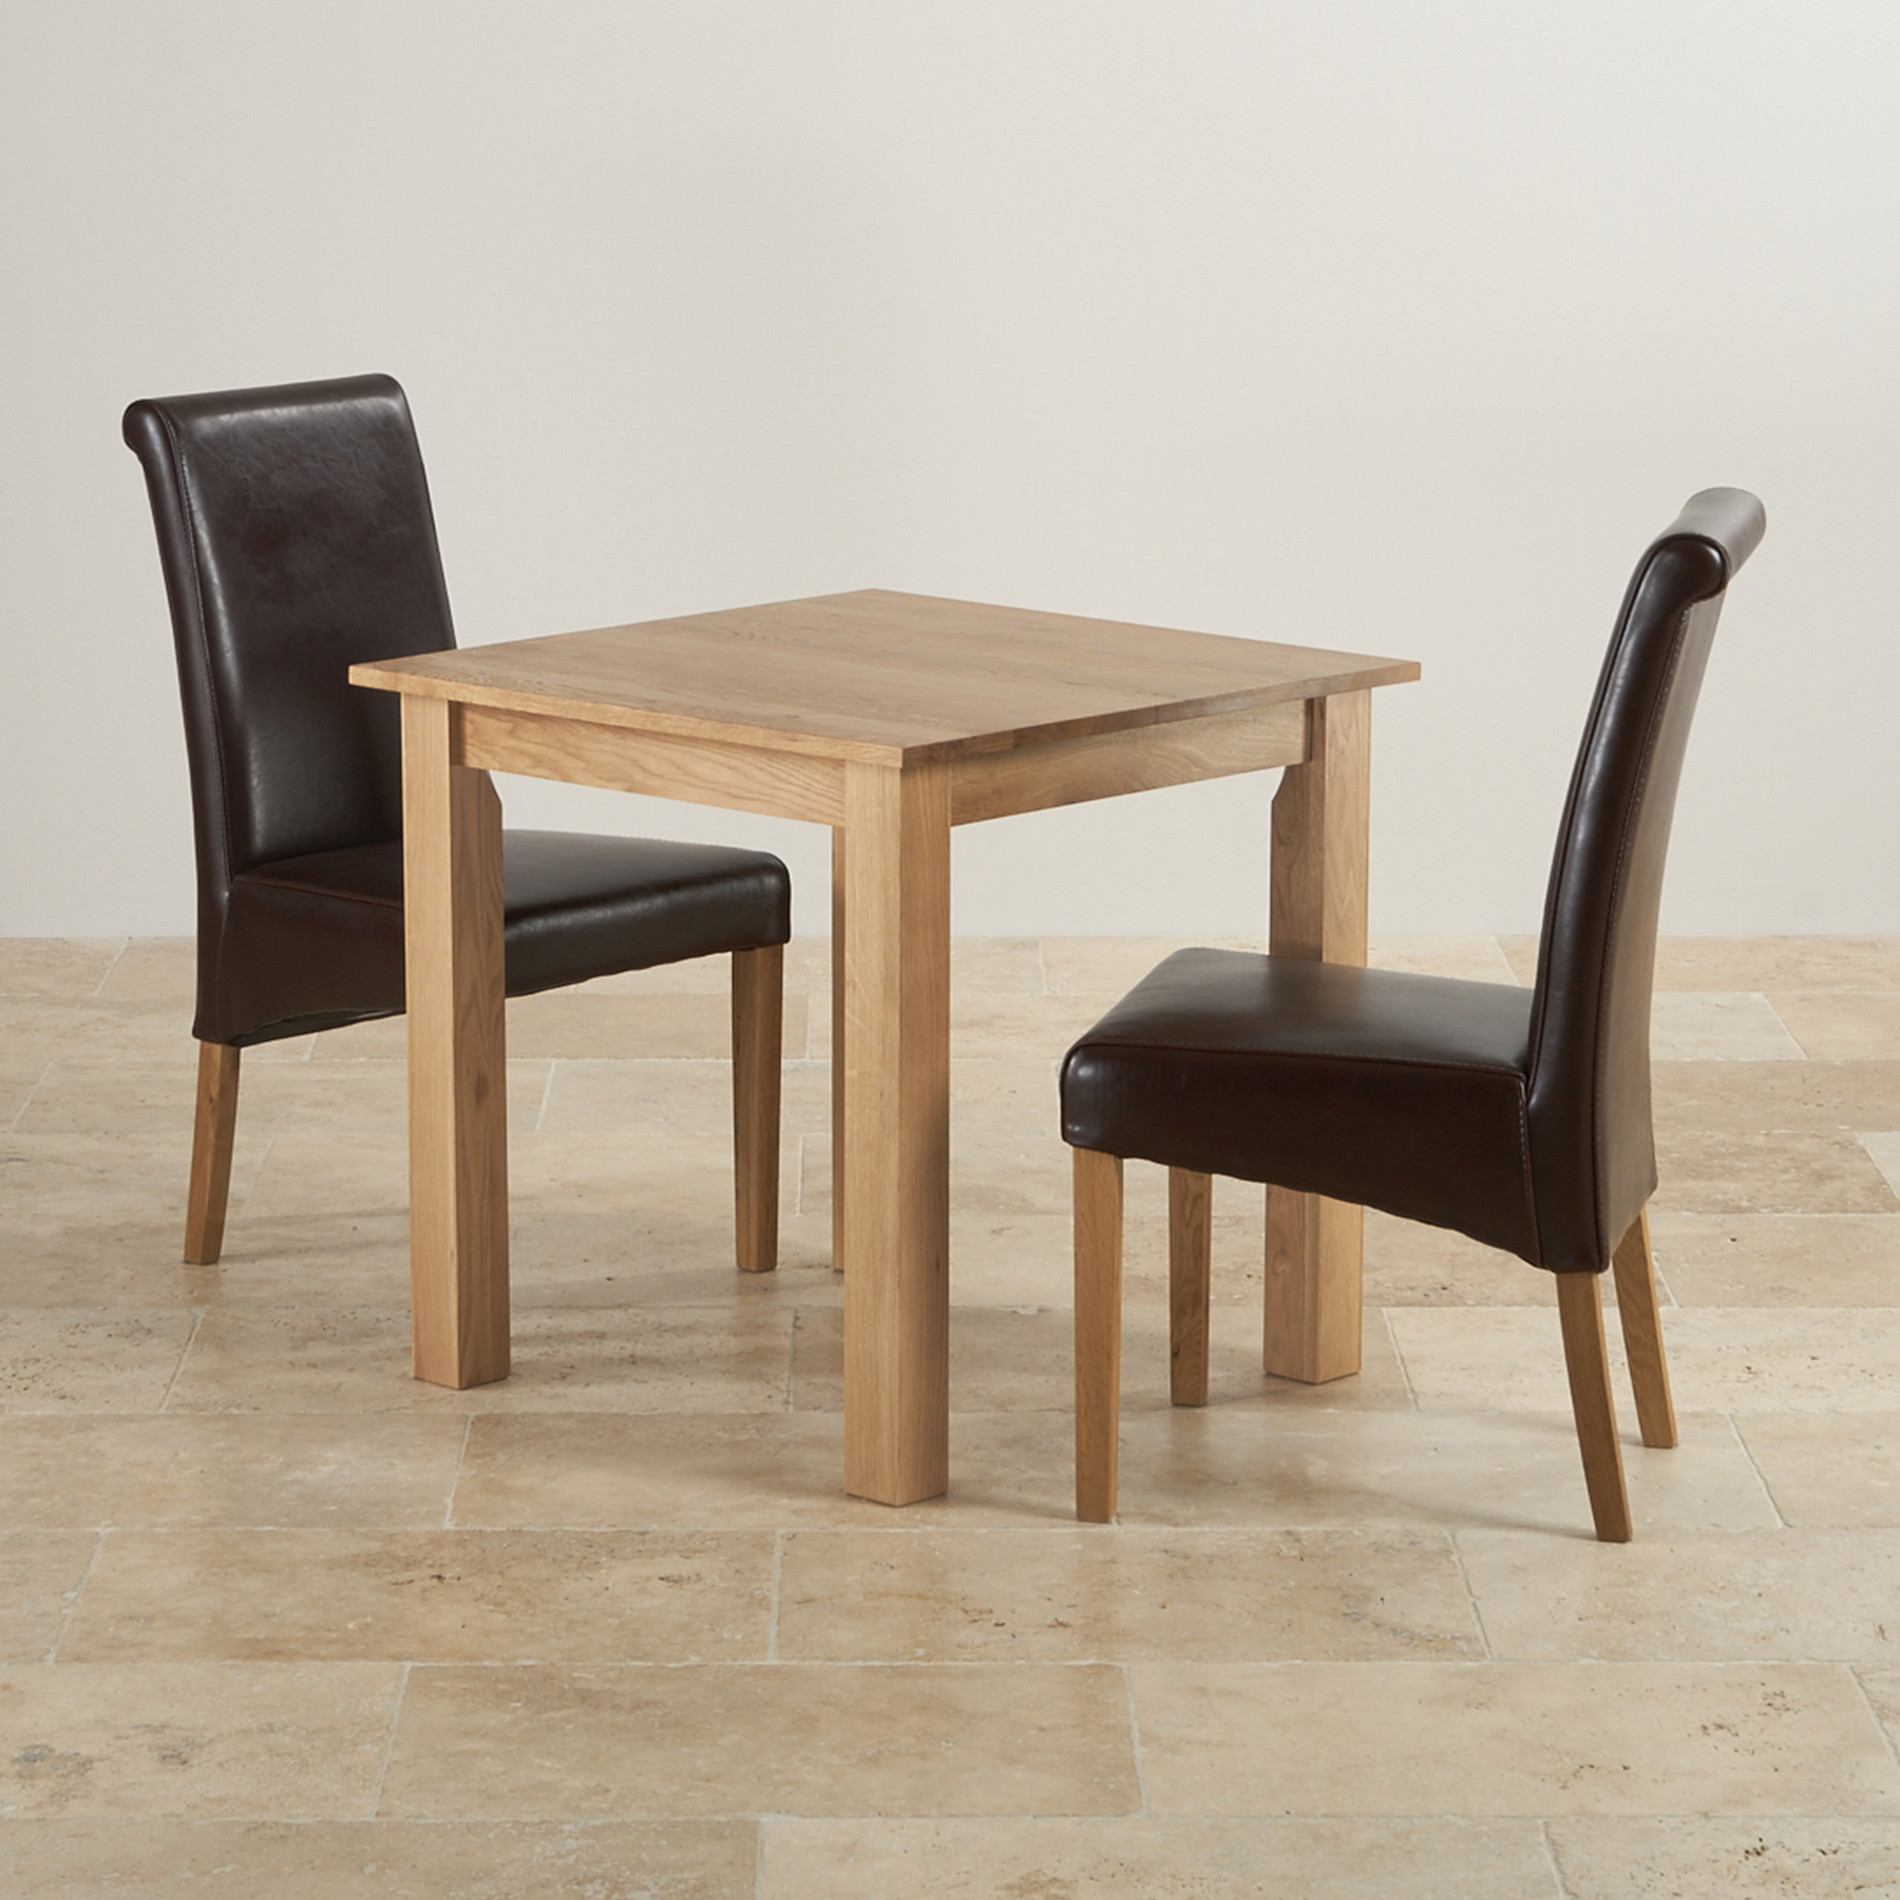 2 Chair Dining Table Hudson Dining Set In Natural Oak Table 43 2 Leather Chairs